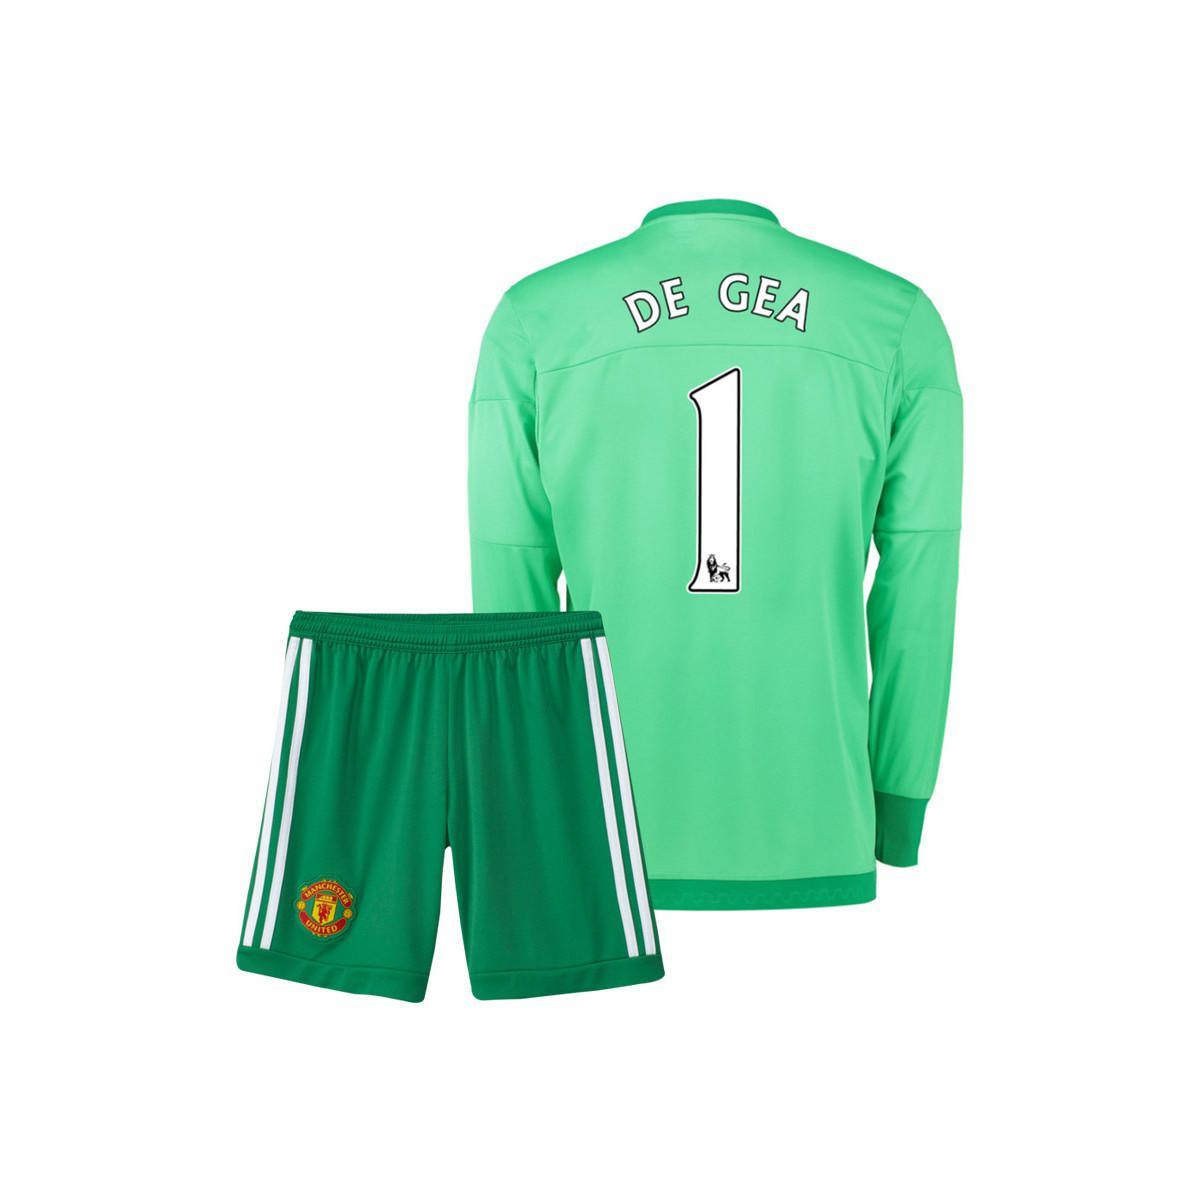 4f758beb6 adidas 2015-16 Manchester United Home Goalkeeper Mini Kit (de Gea 1 ...